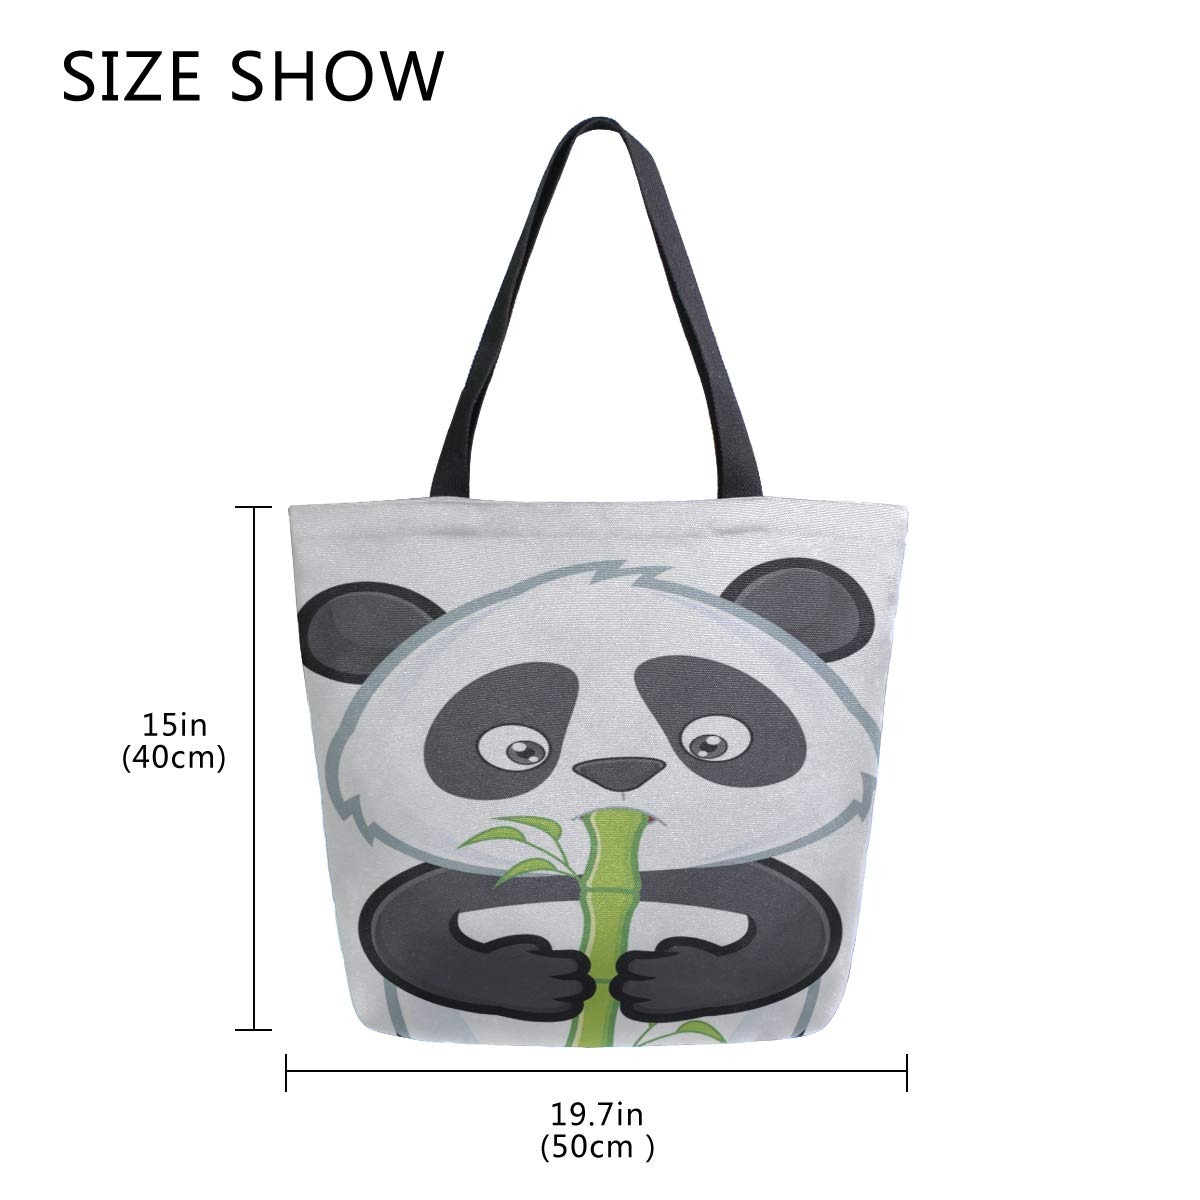 Chinese Panda Eating Bamboo Portable Large Double Sided Casual Canvas Tote Bags Handbag Shoulder Reusable Shopping Bags Duffel Purse For Women Men Grocery Travel